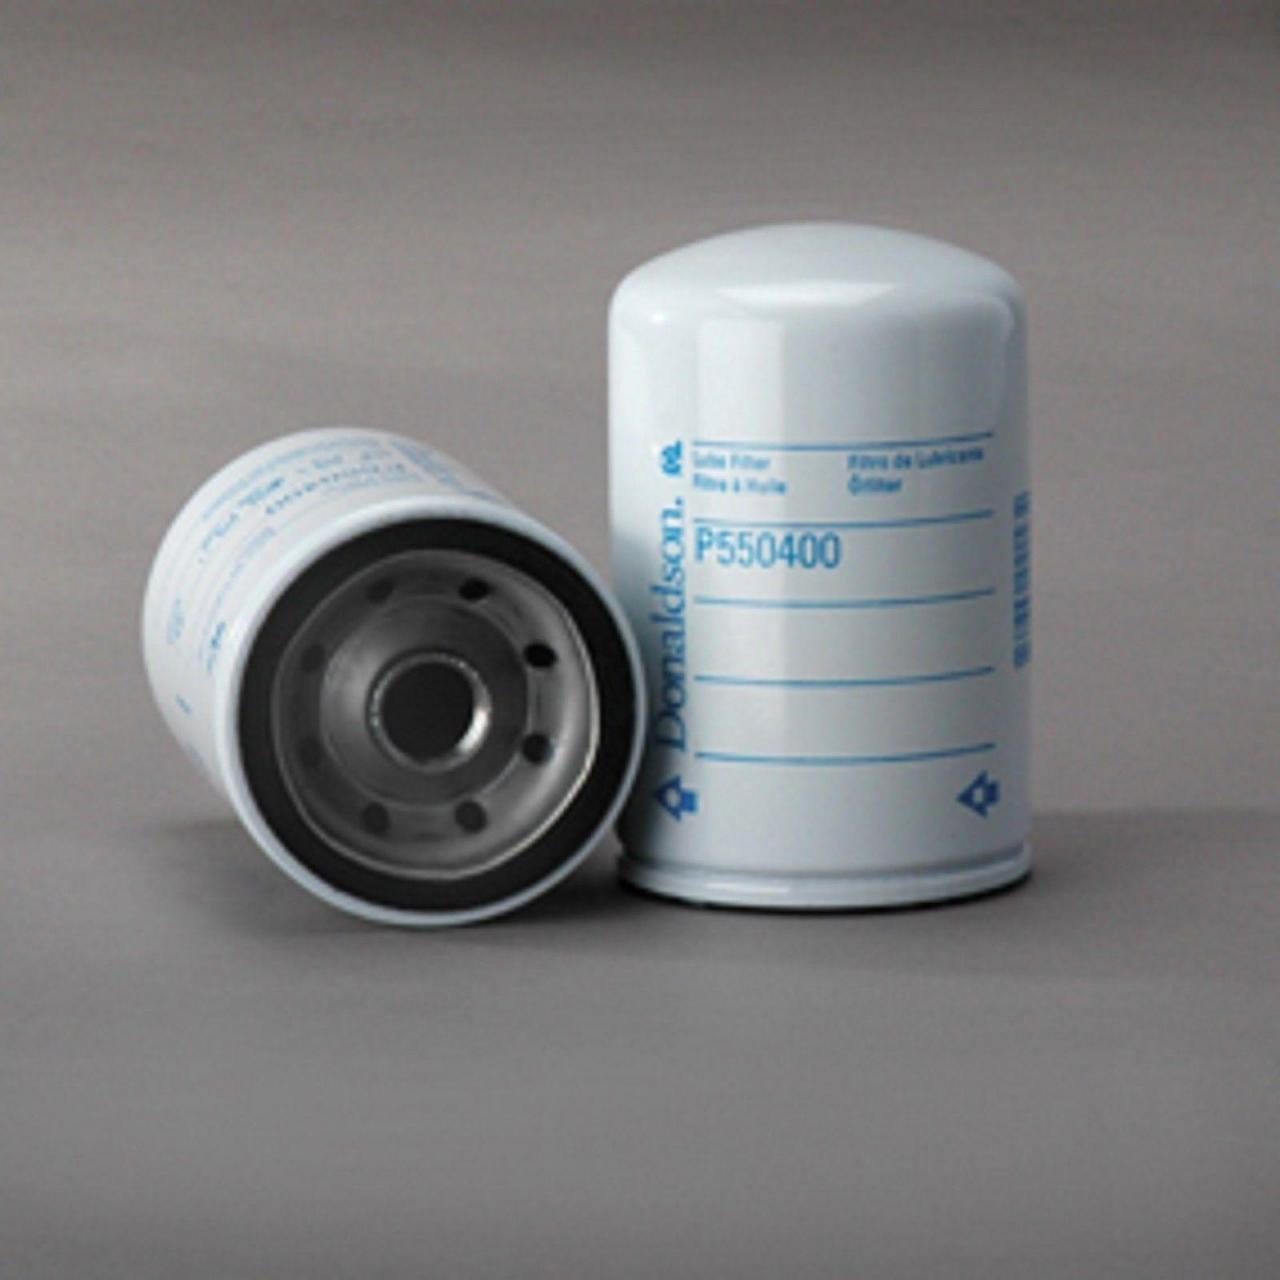 Buy cheap Ford Ranger F-150 Donaldson P550400 Engine Oil Filter product